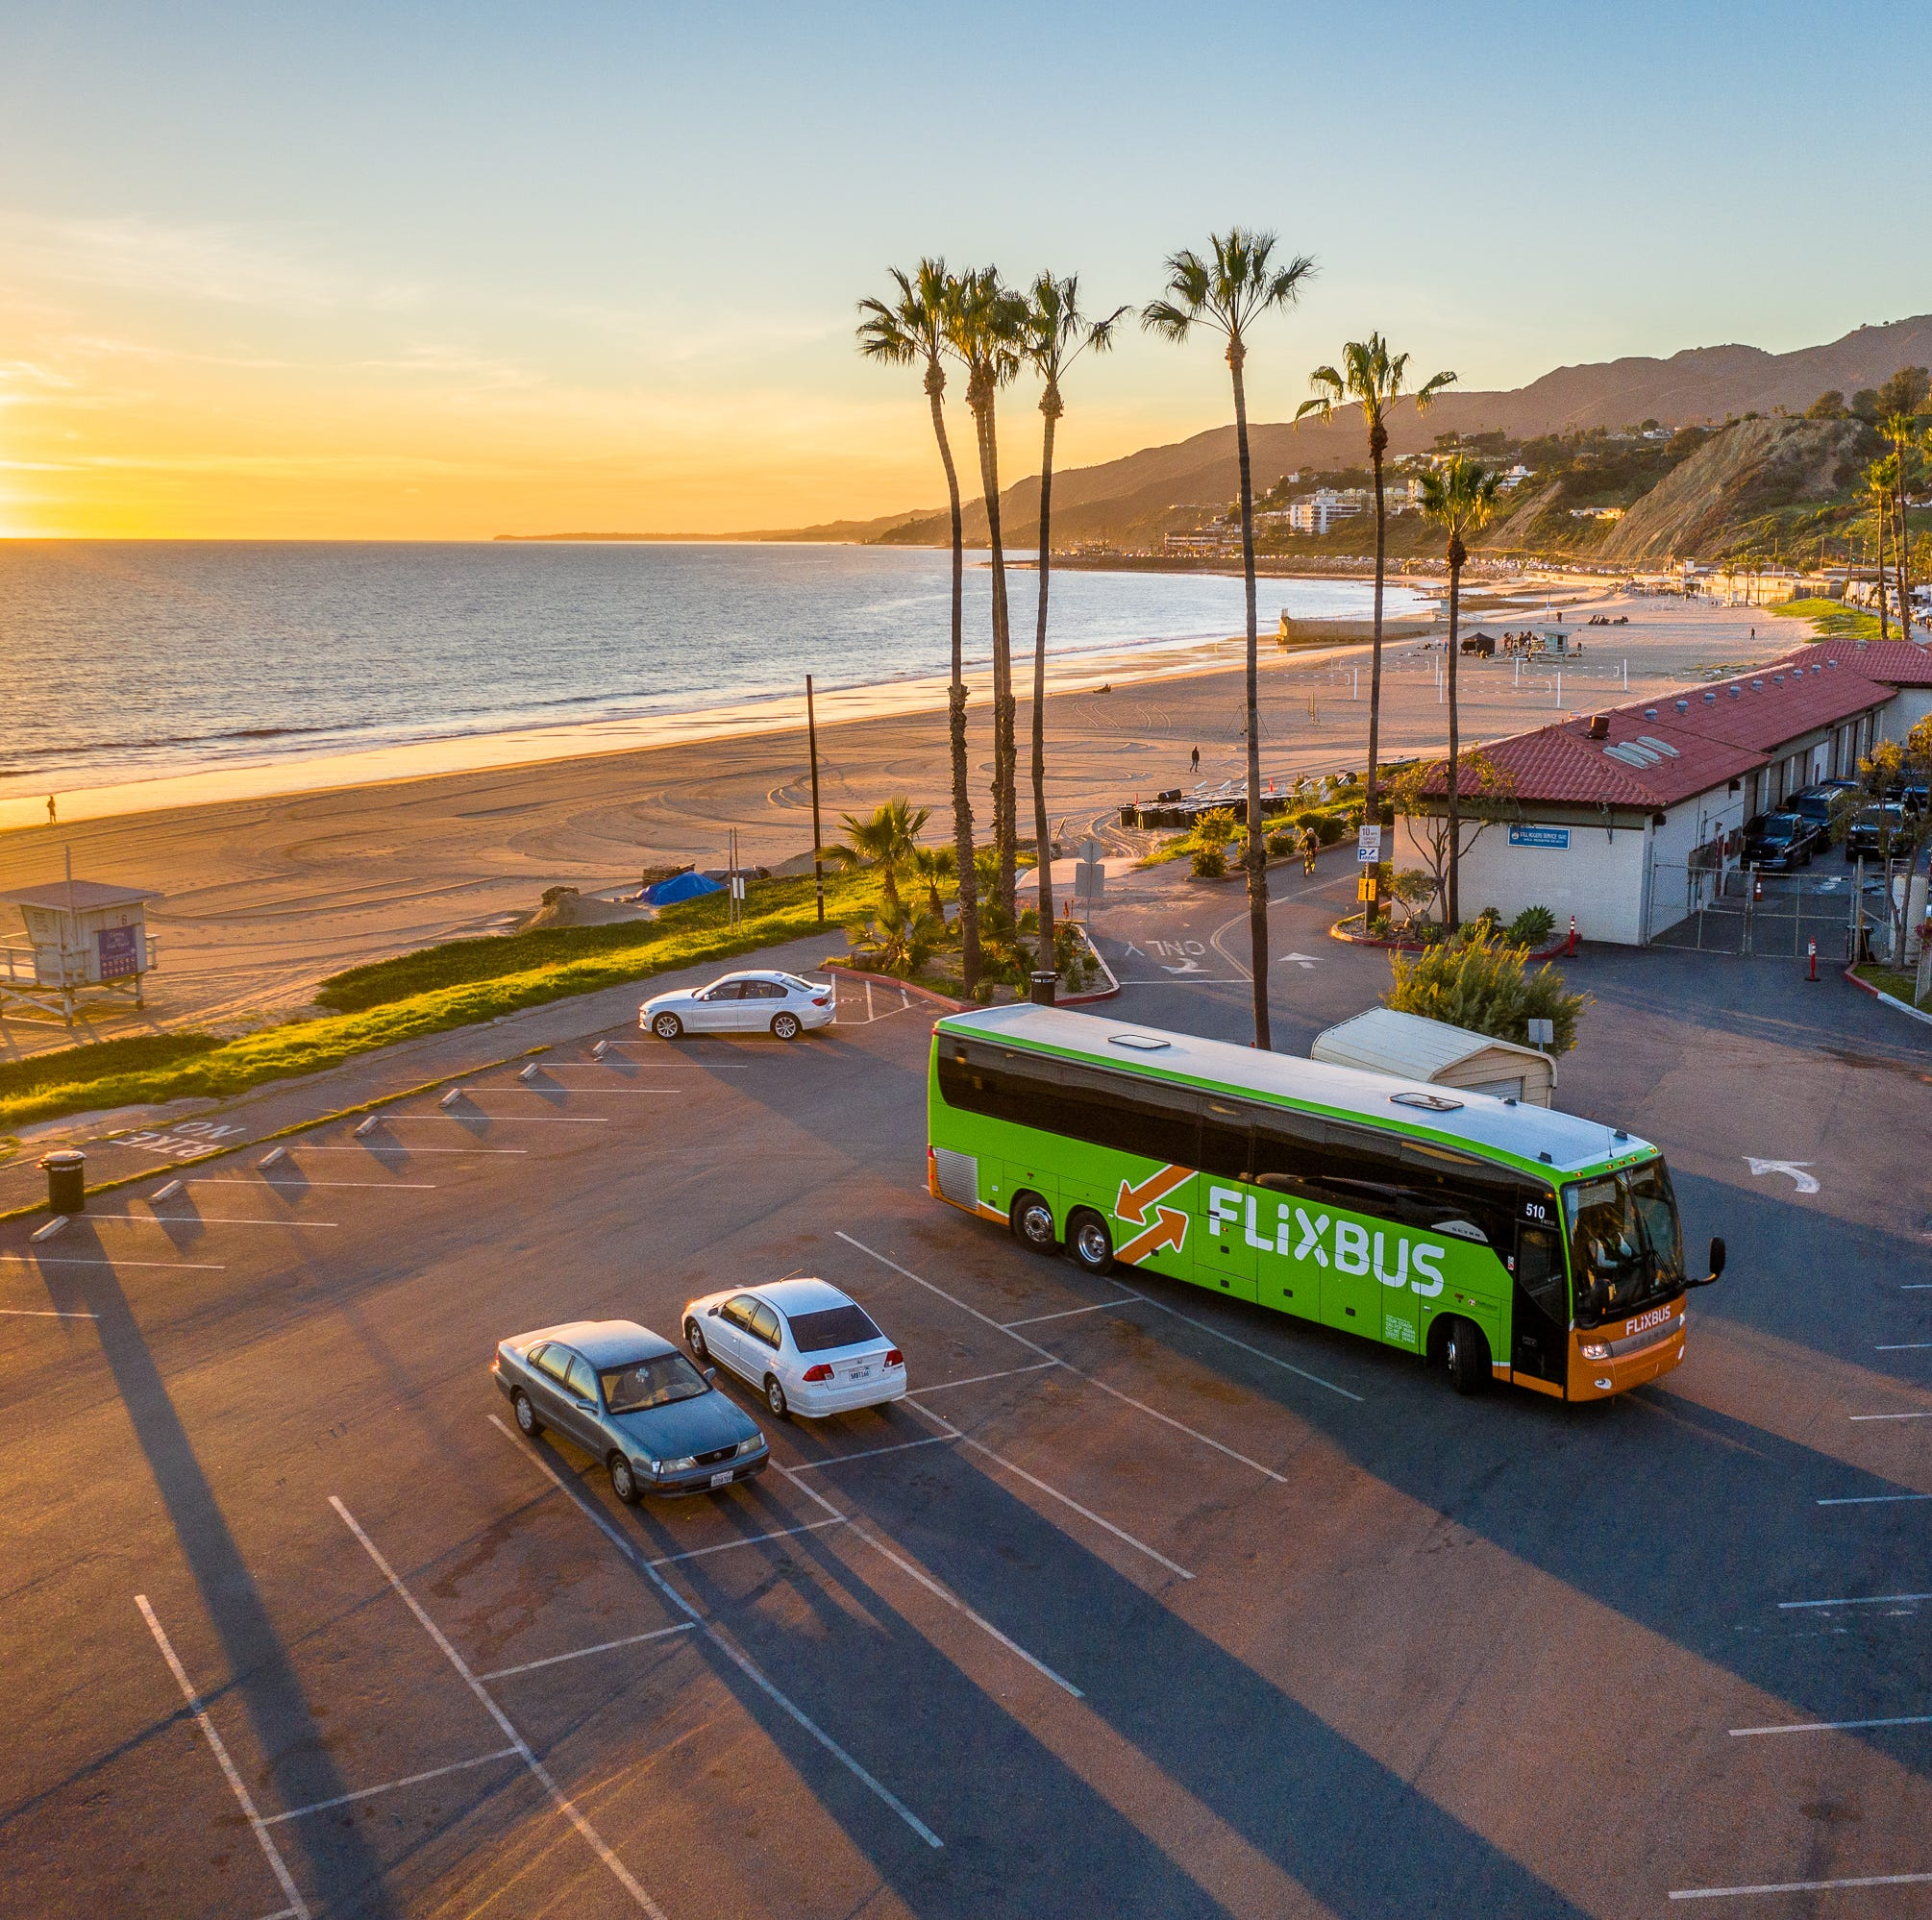 Global bus company offering fares starting at 99 cents plans a Ventura stop